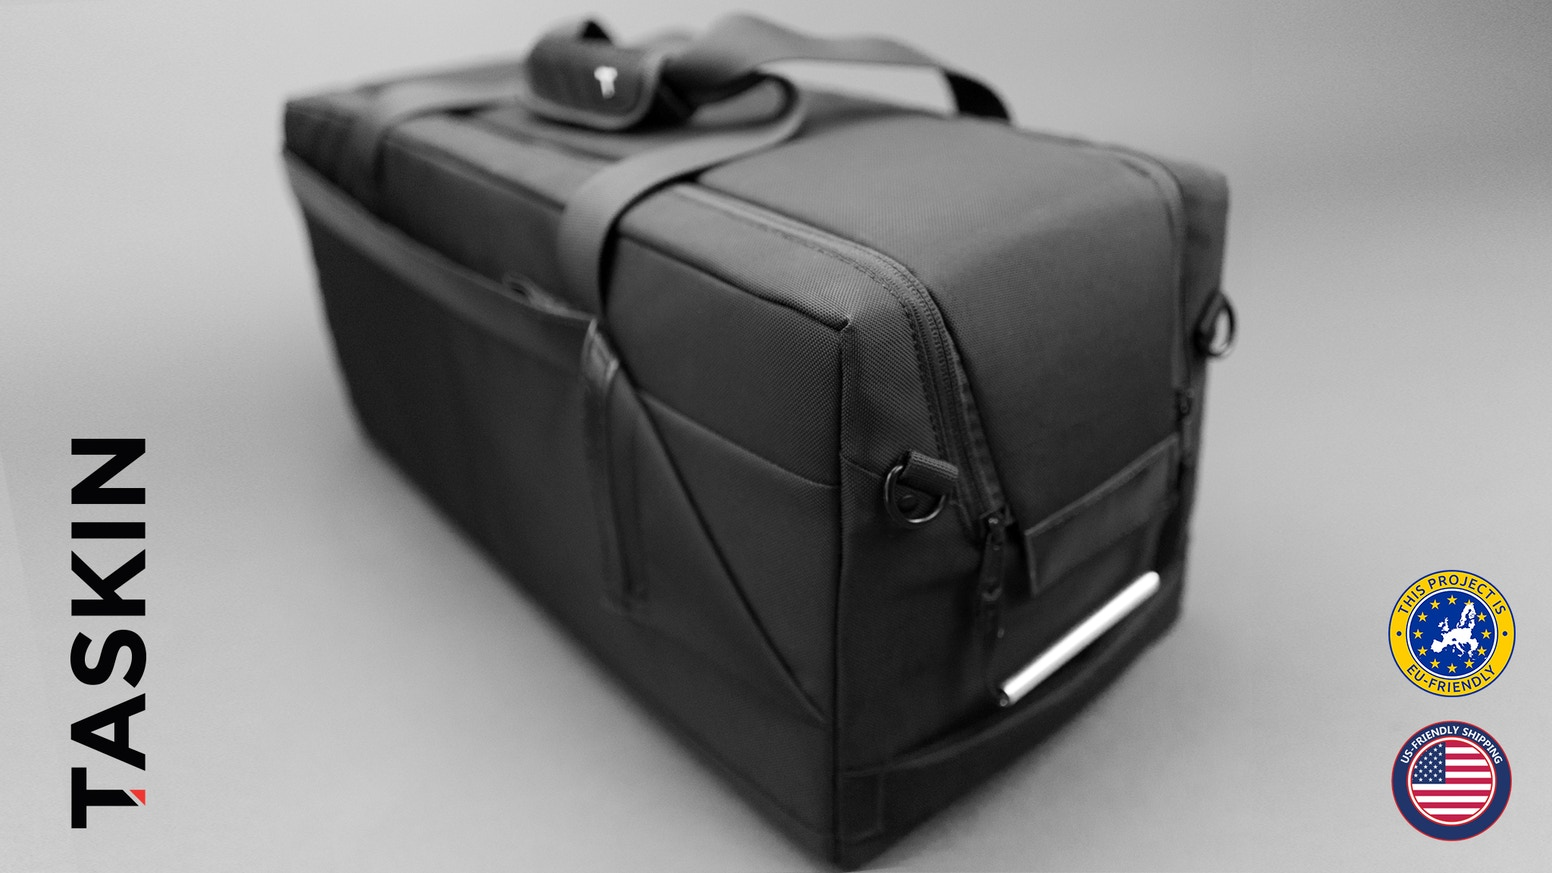 Sleek design and exclusive features make Taskin Kube the best-designed duffel bag anywhere - now upgraded to a whole new level.